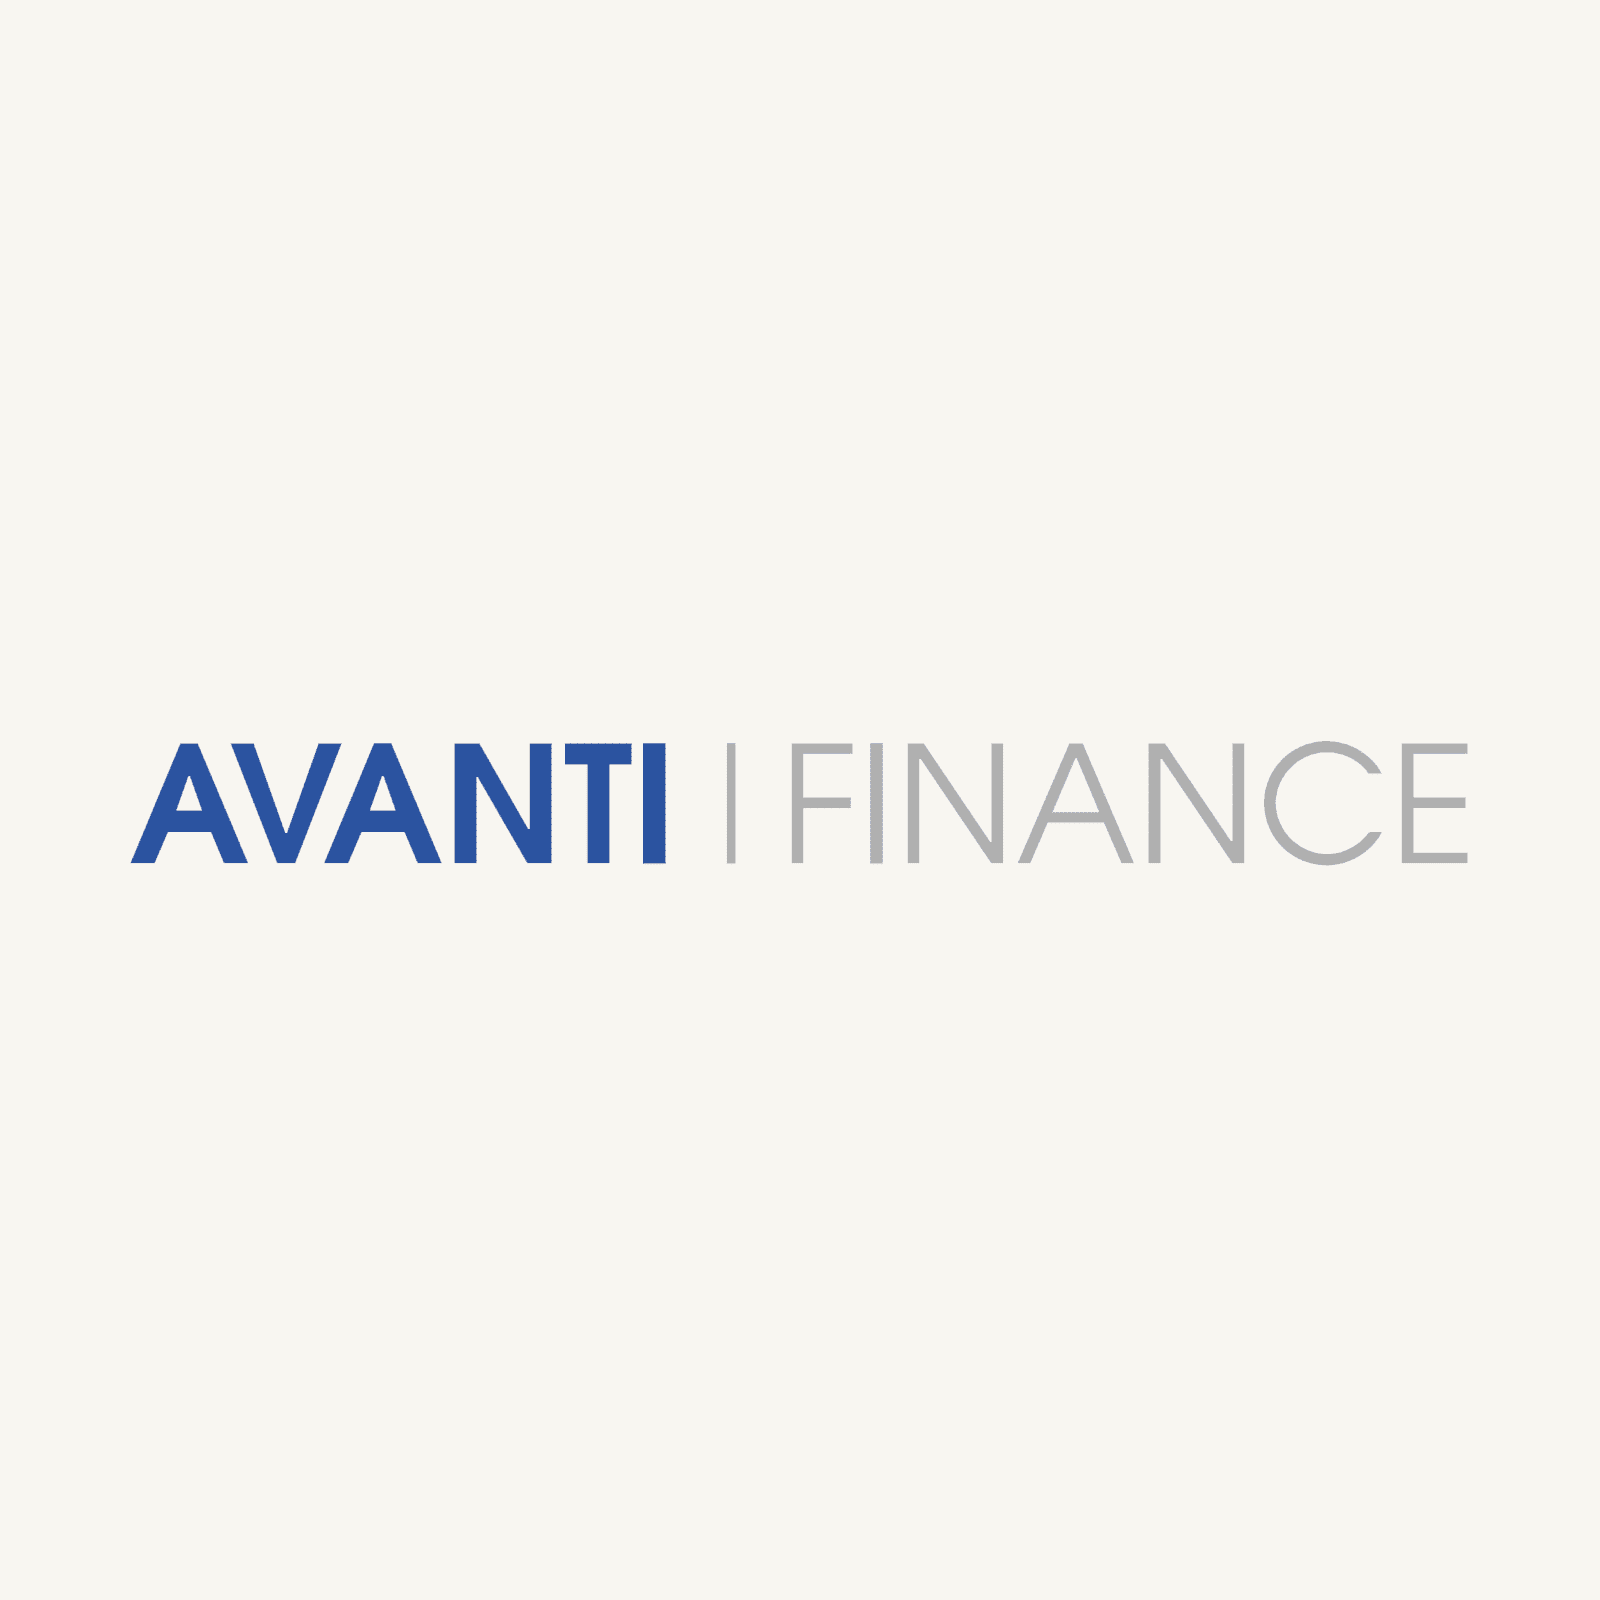 Nish Sethi appointed Chief Financial Officer at Avanti Finance